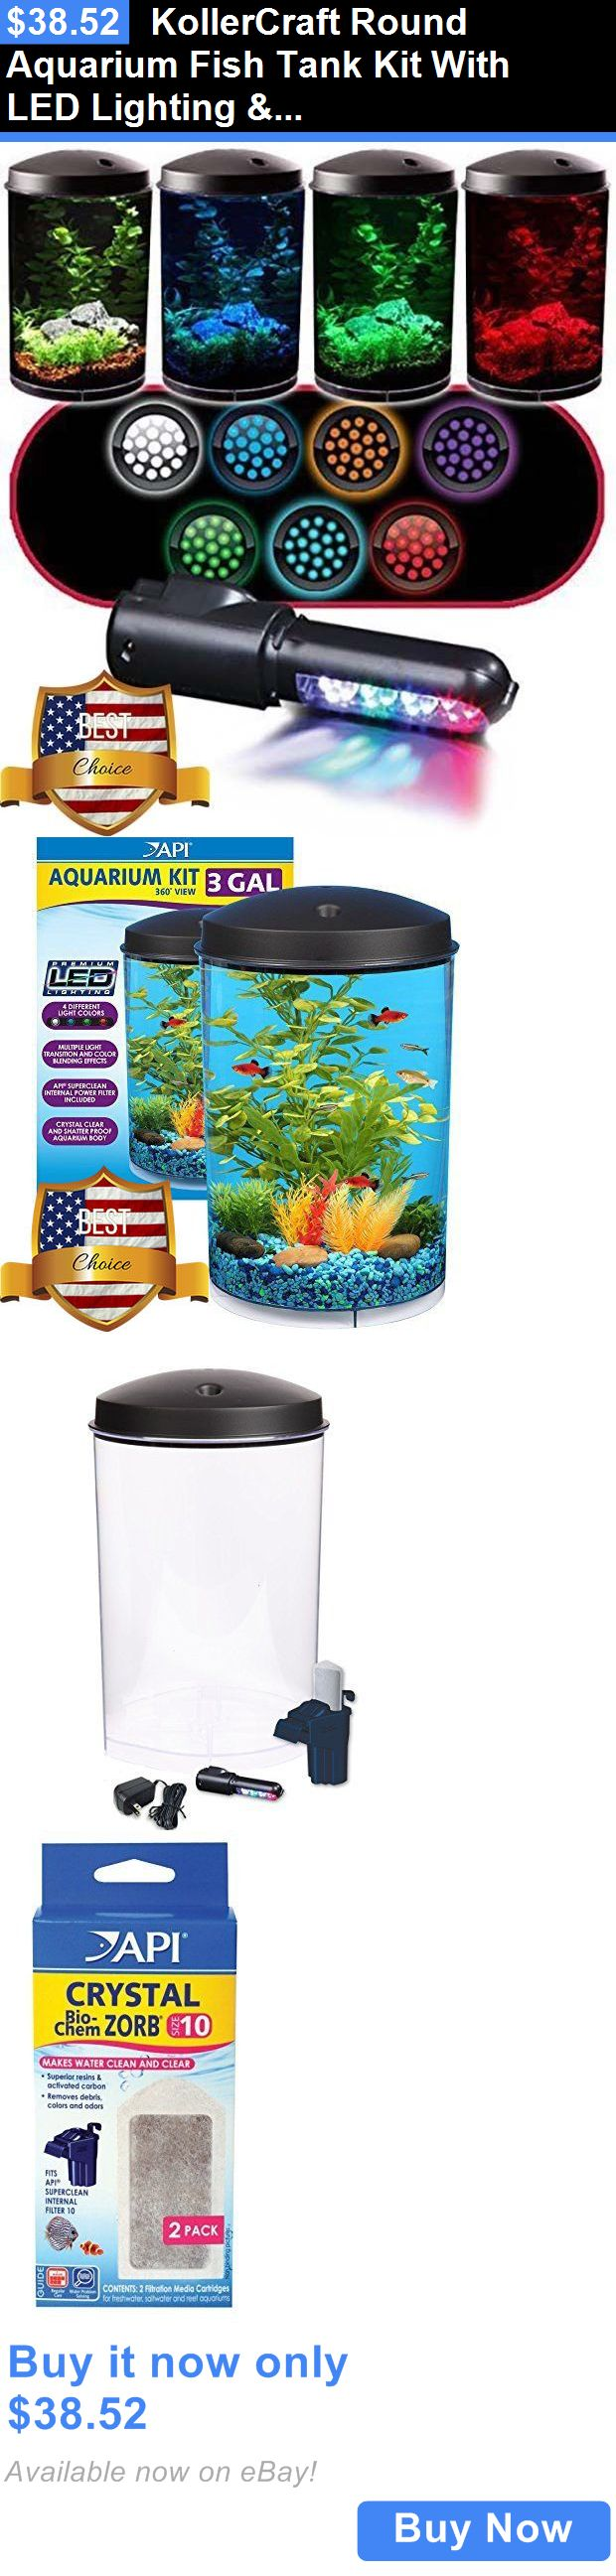 Animals Fish And Aquariums: Kollercraft Round Aquarium Fish Tank Kit With Led Lighting And Filter 3 Gallon New BUY IT NOW ONLY: $38.52